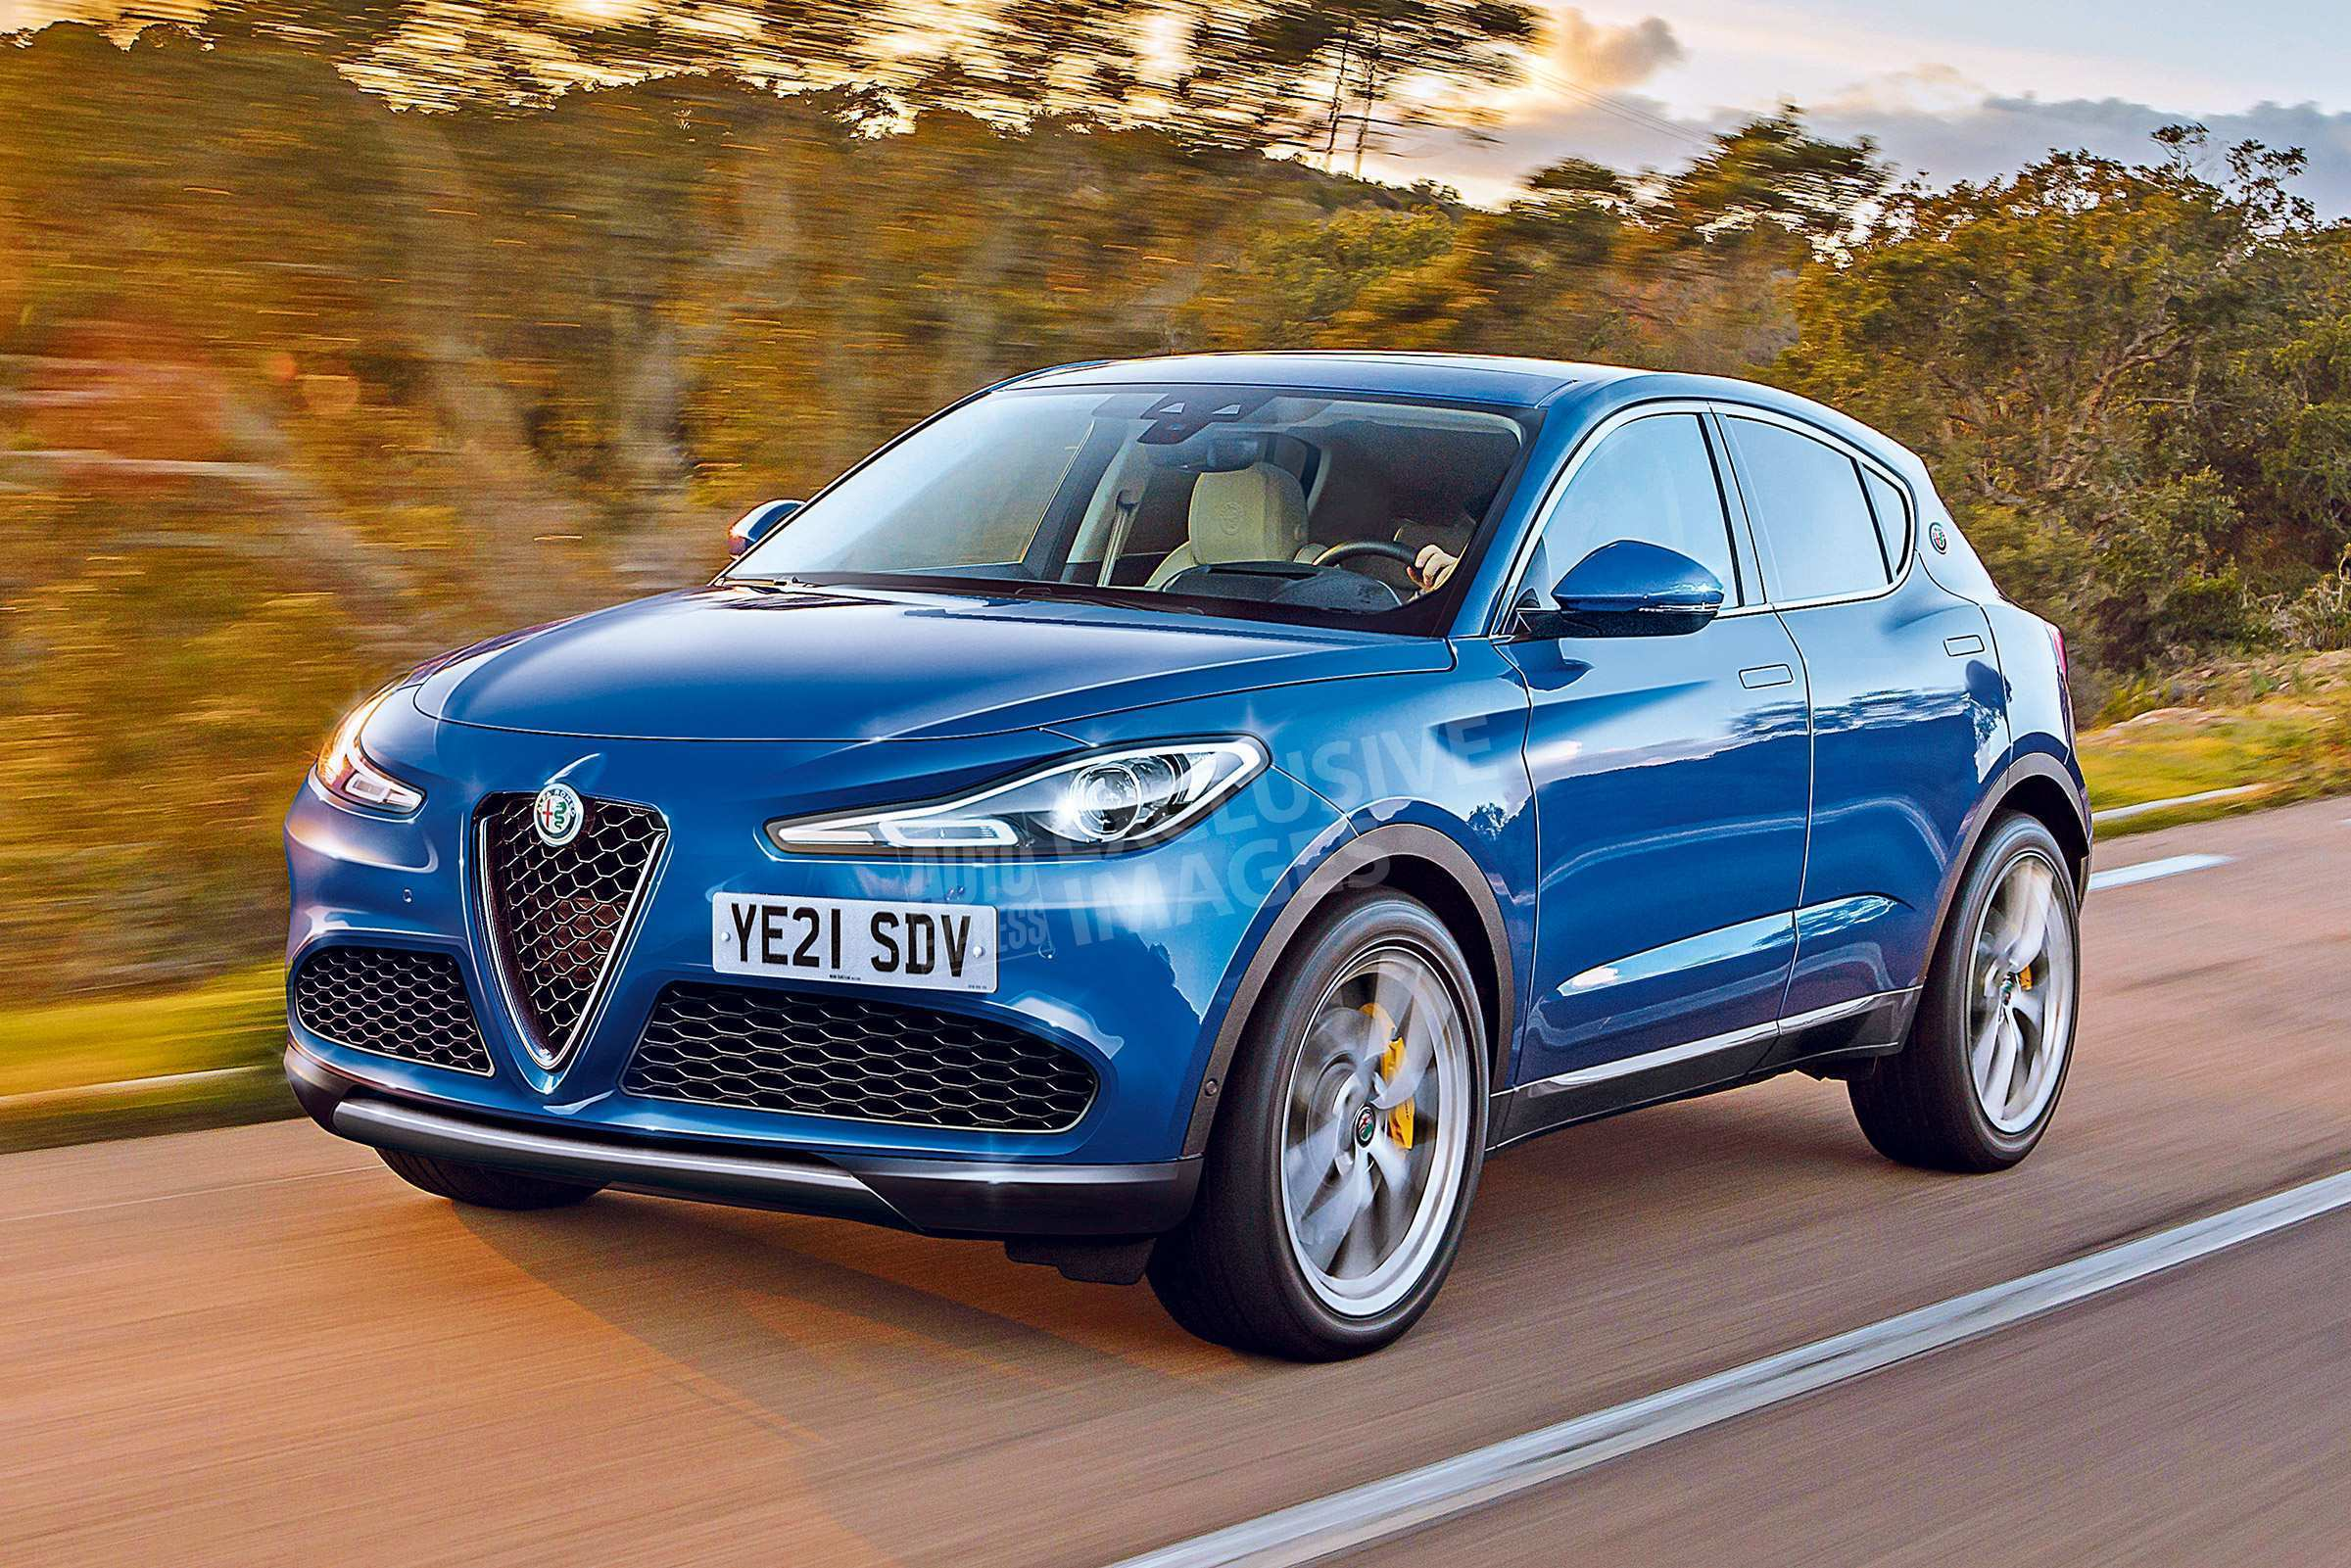 99 All New 2020 Alfa Romeo Models New Review for 2020 Alfa Romeo Models